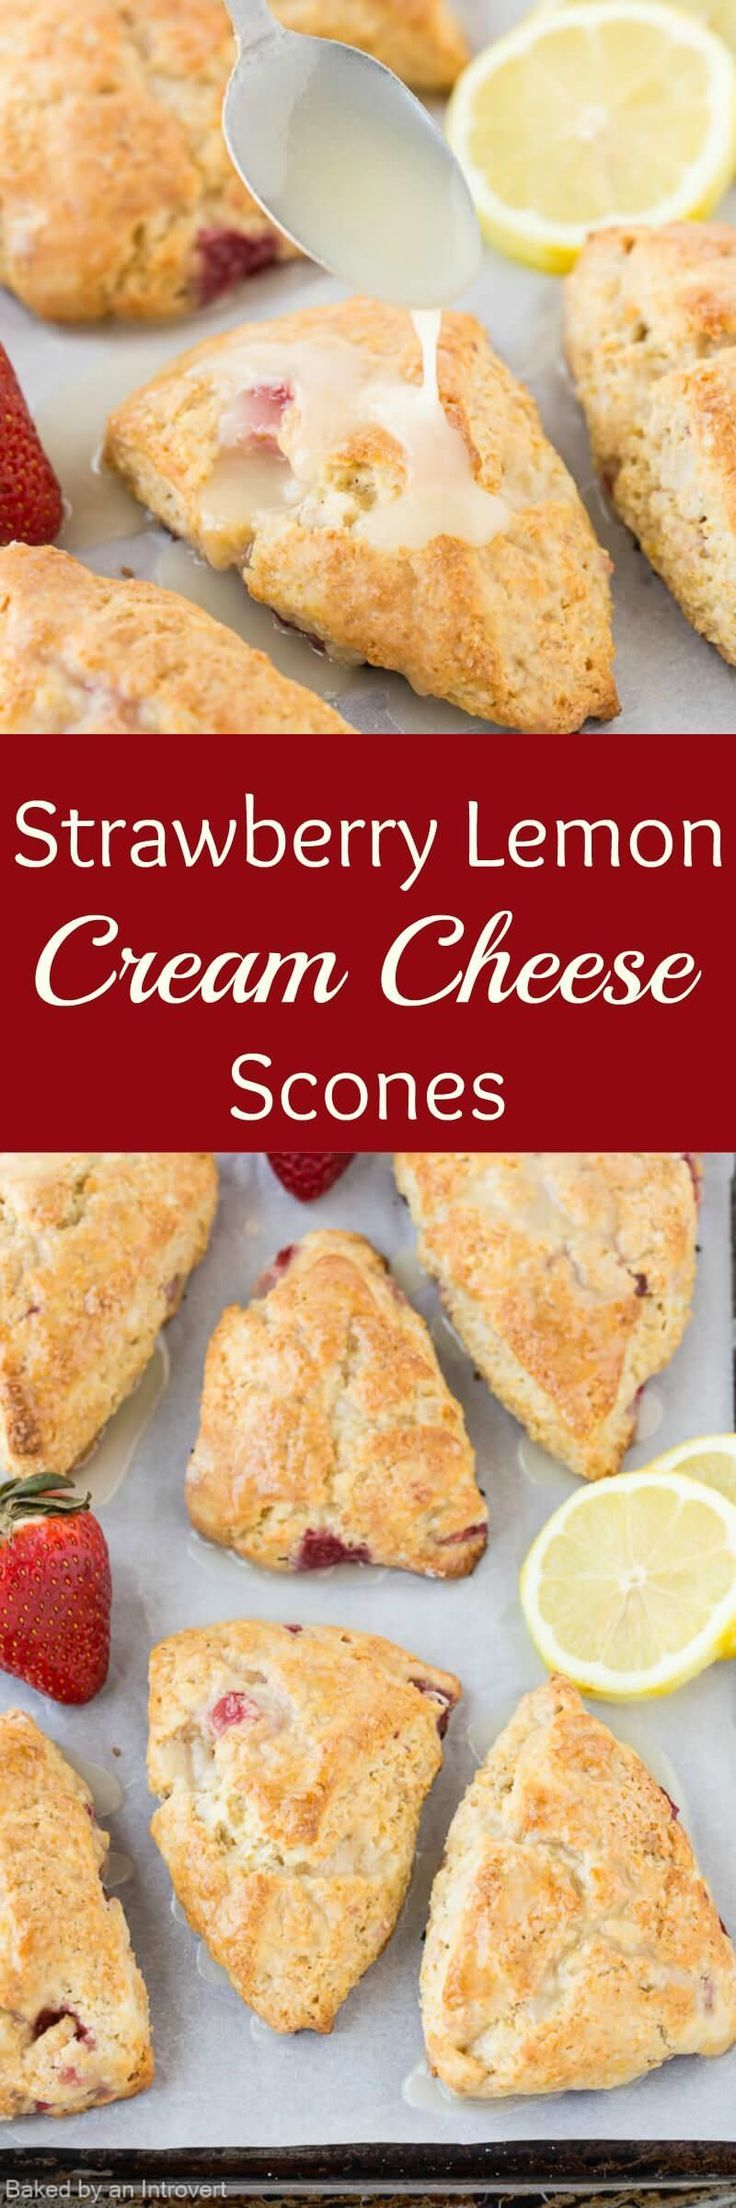 ... Scones with Strawberries | Recipe | Cheese Scones, Scones and Lemon